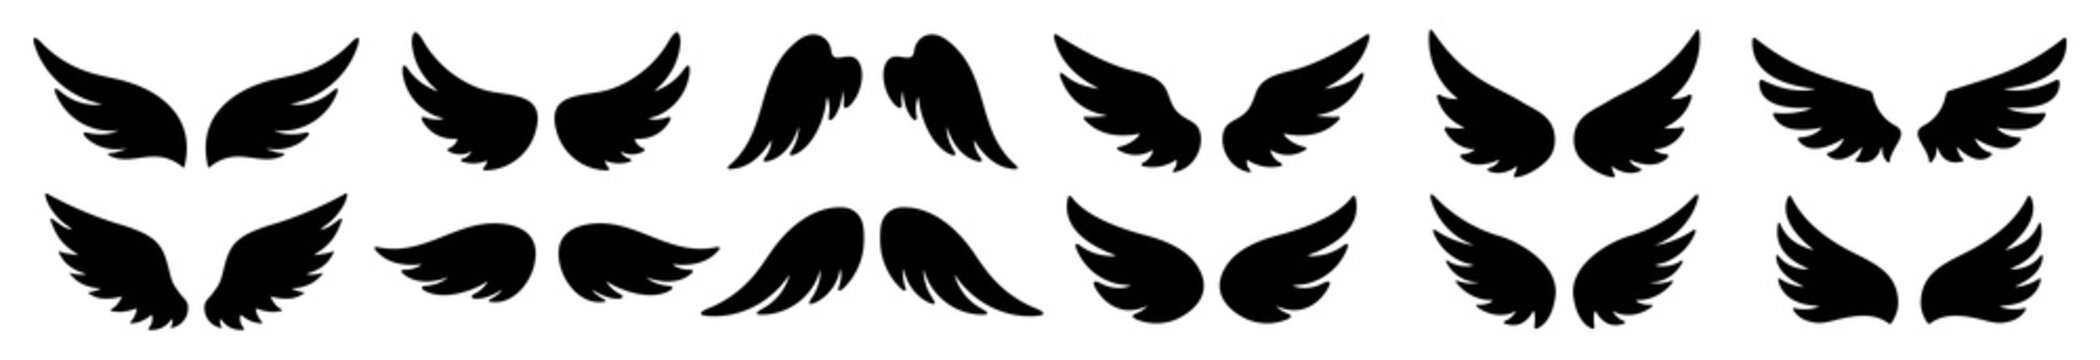 Wings icon set, Wings Collection in different shape, Wings badges, Vector illustration.